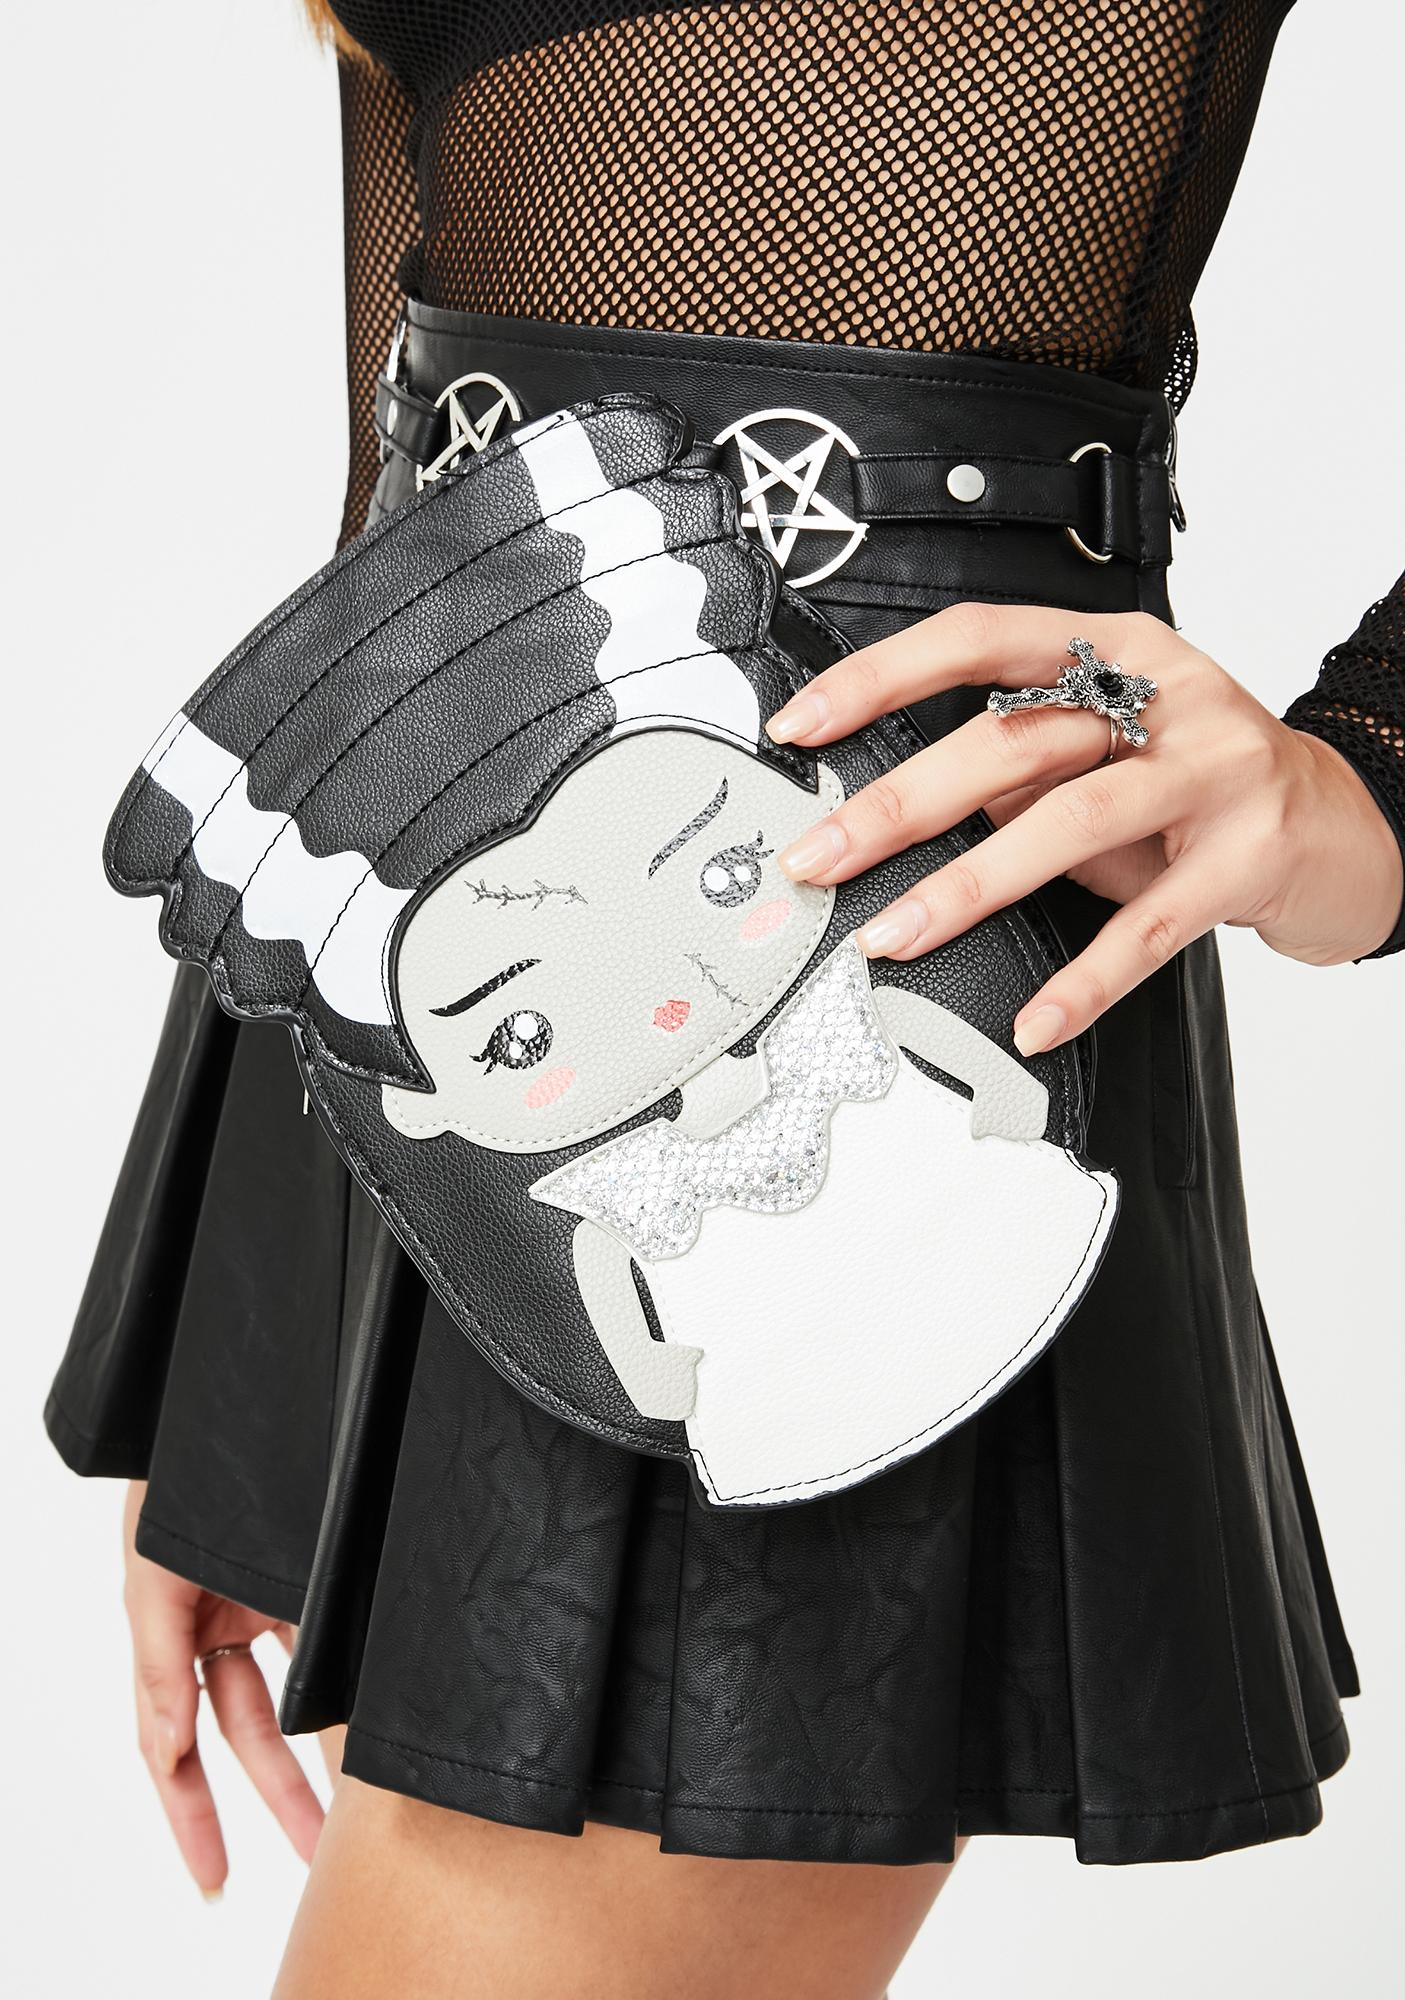 Mrs. Frankenstein Crossbody Bag by